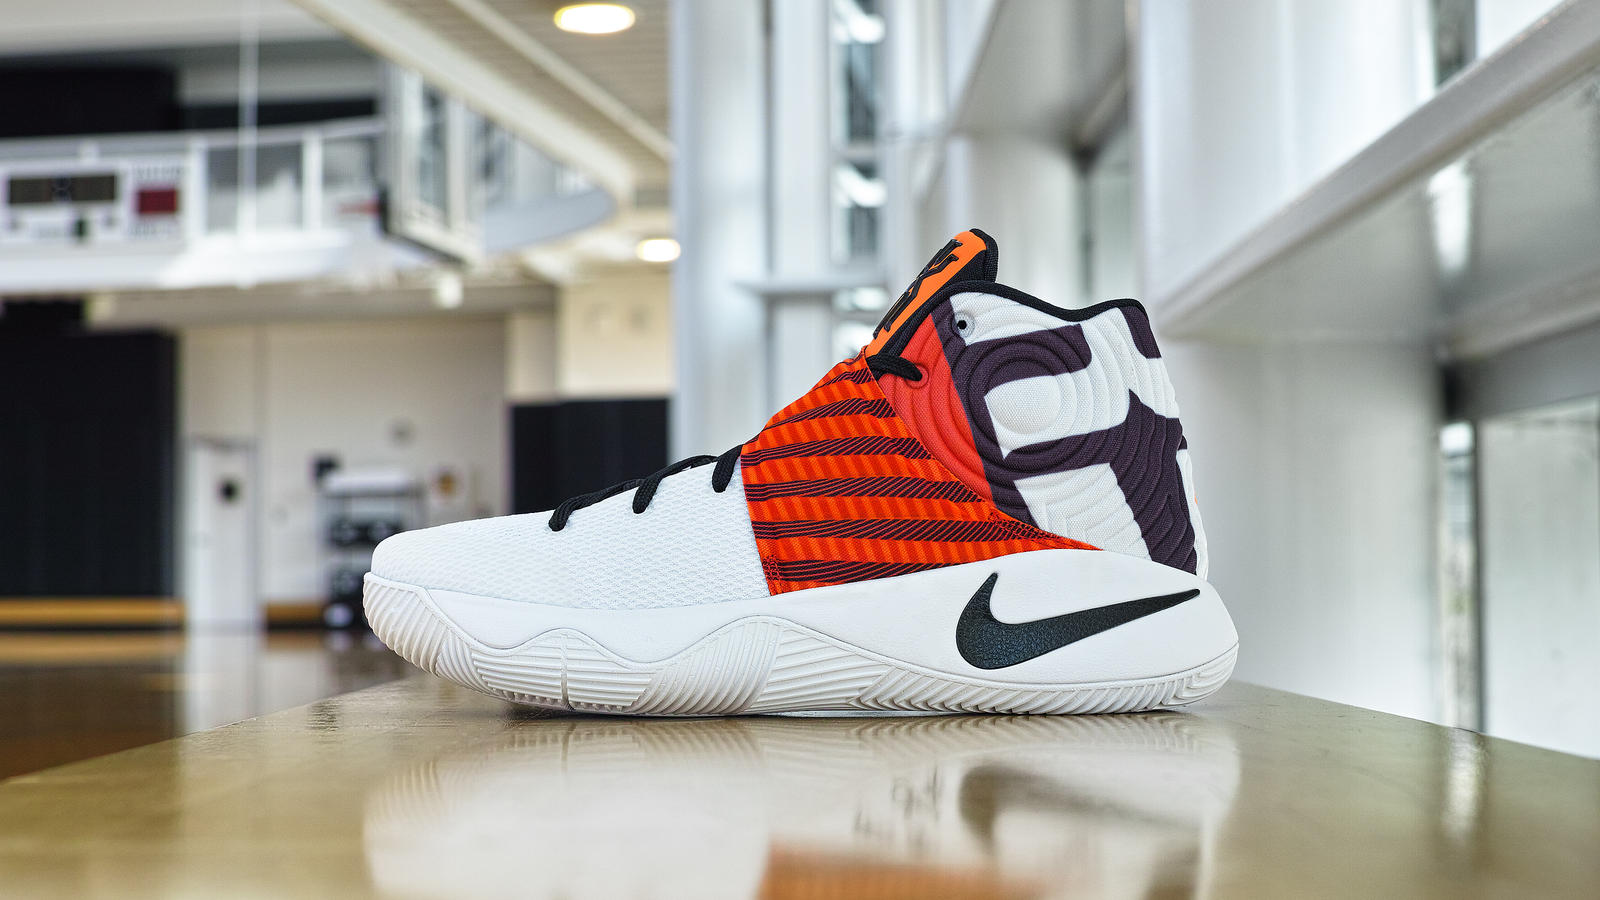 huge discount aa93a 0c9c3 ... official store nike kyrie 2 crossover nike kyrie 2 crossover 02 ed7c9  32bf5